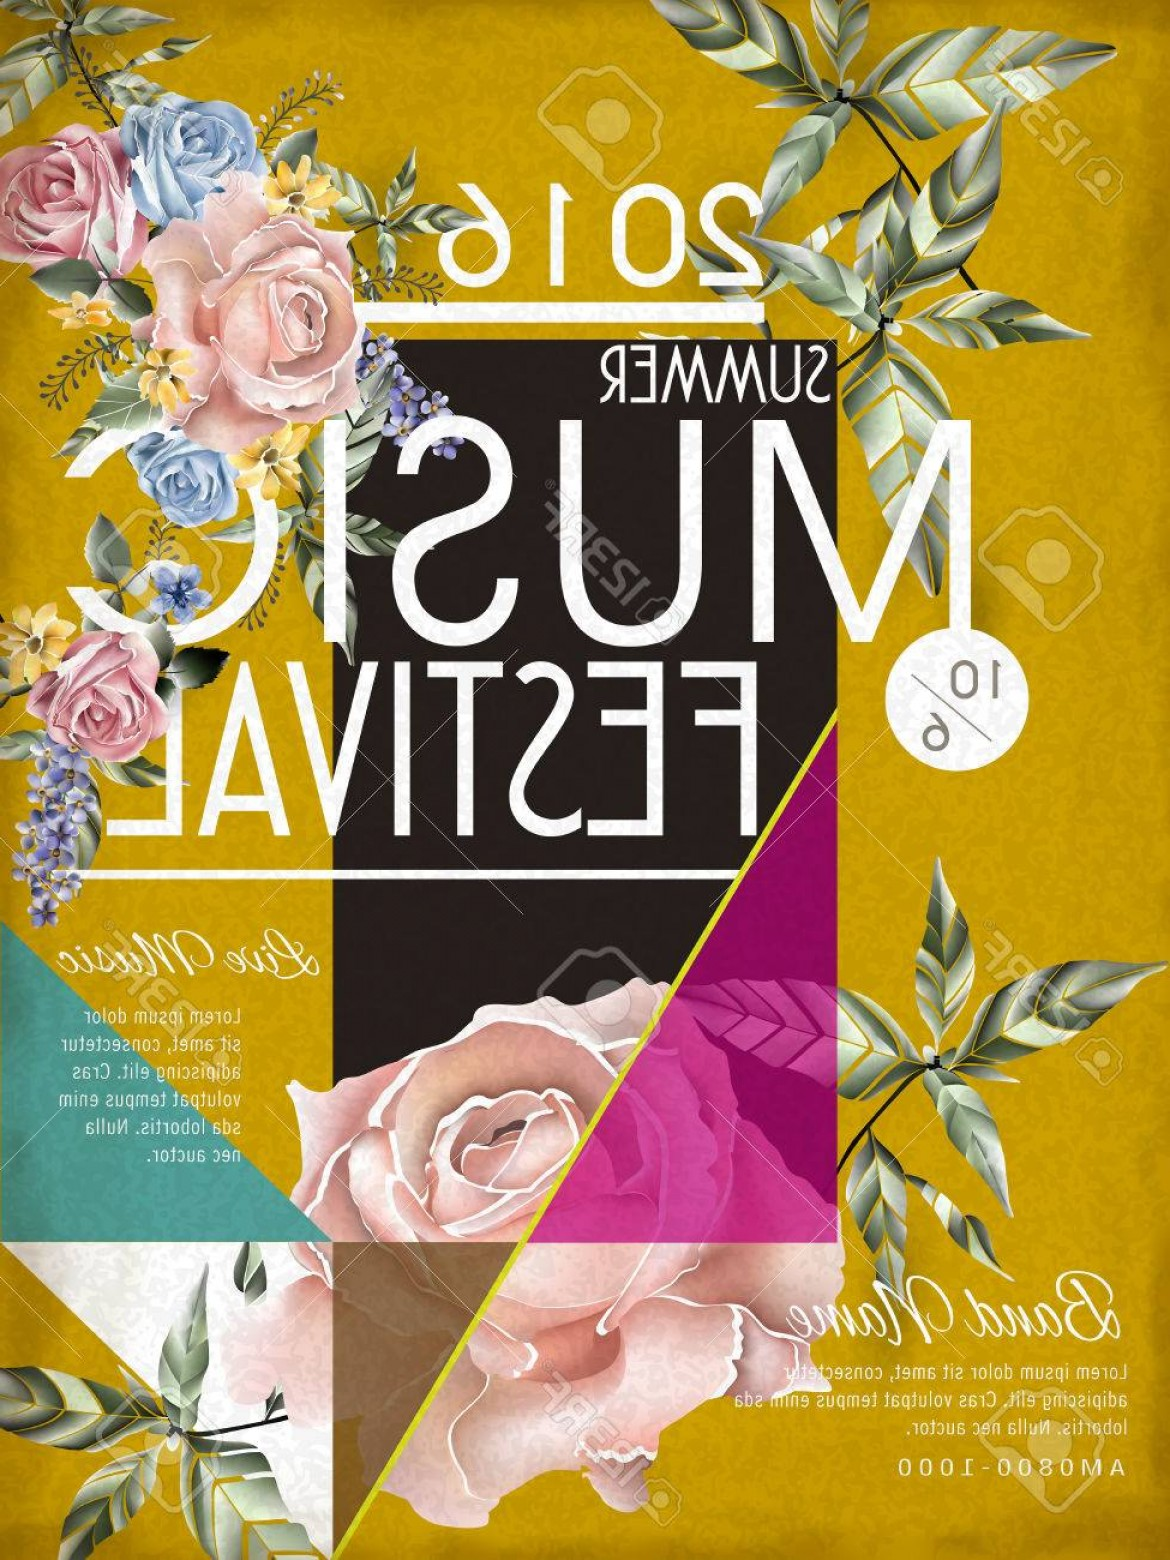 Vector Flower Band: Photostock Vector Music Festival Poster Template Design With Floral Elements